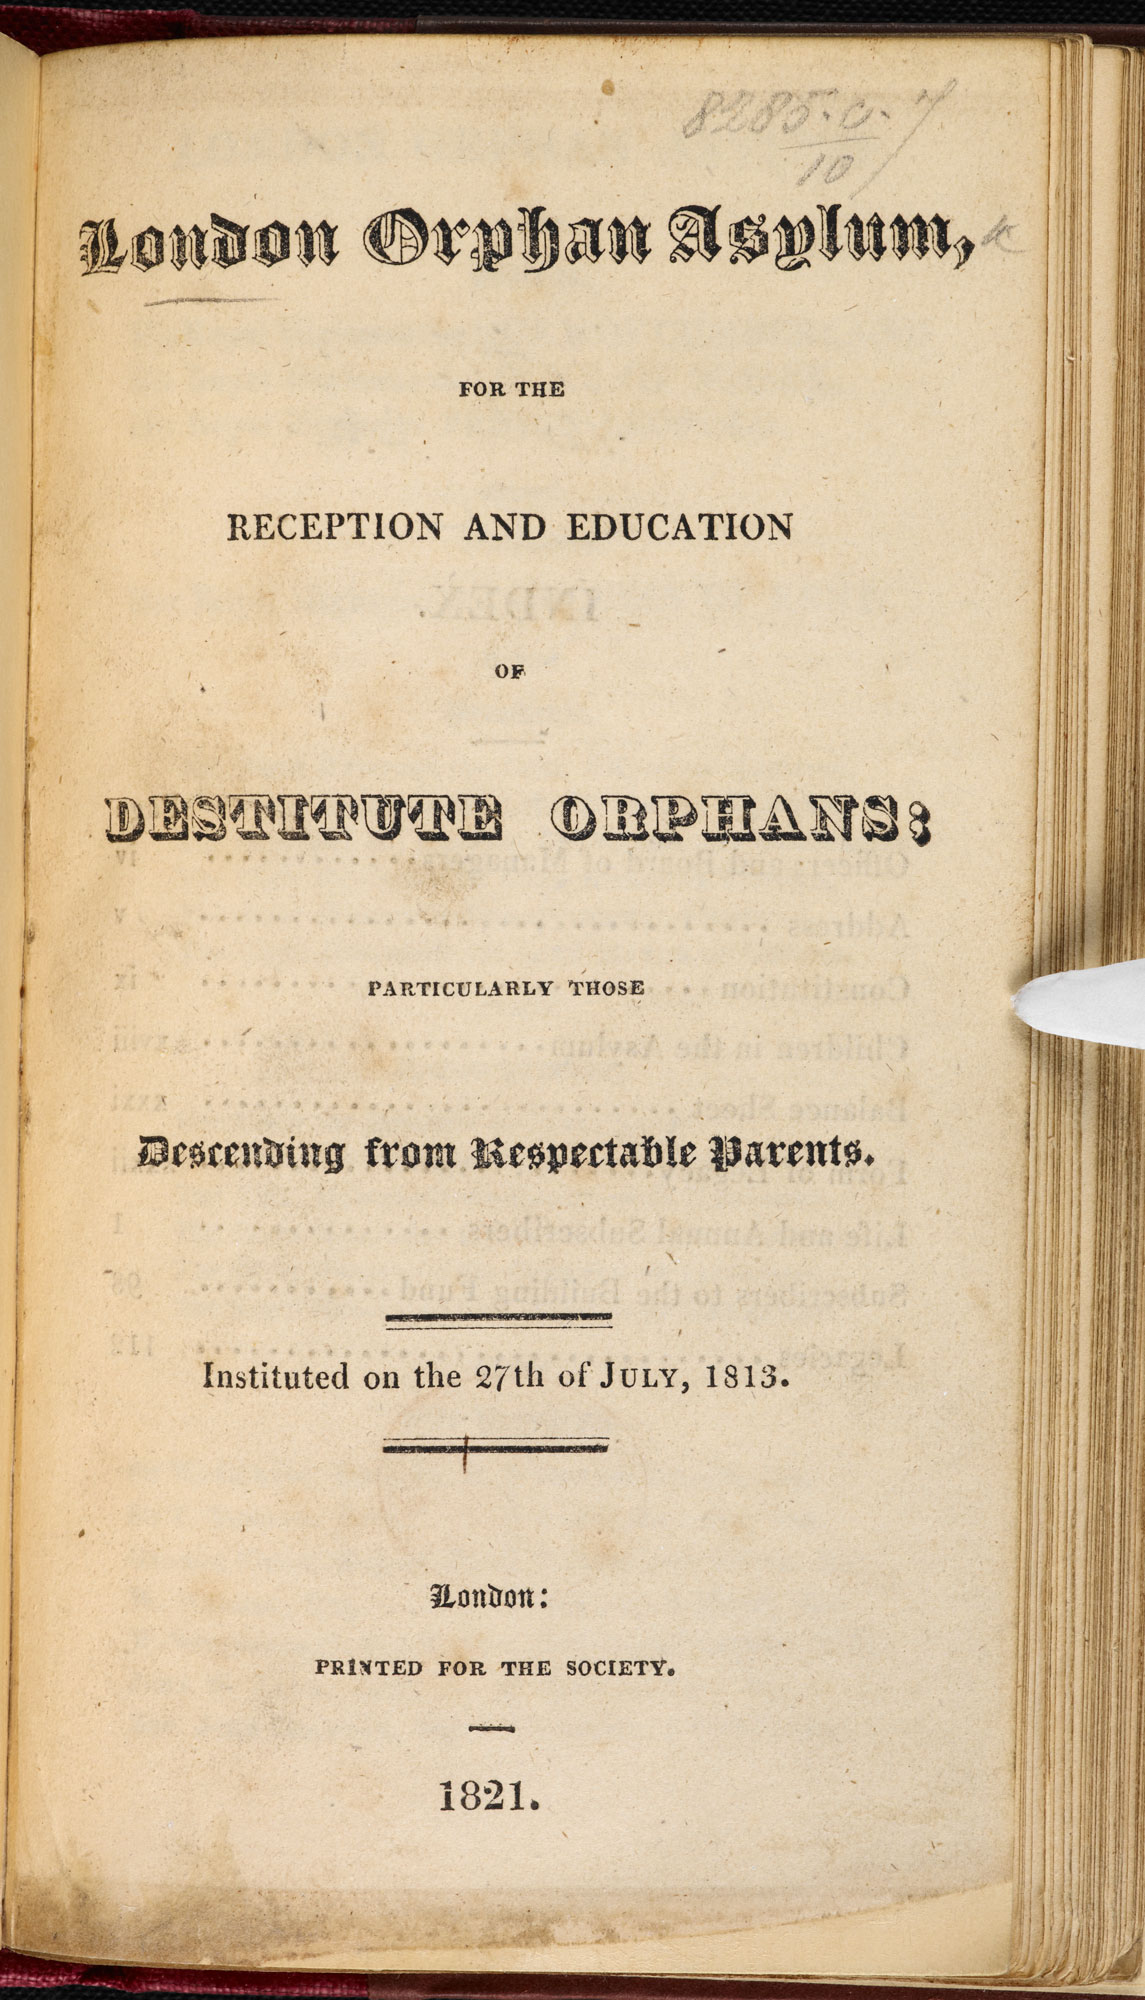 Outline of the London Orphan Asylum [page: title page]